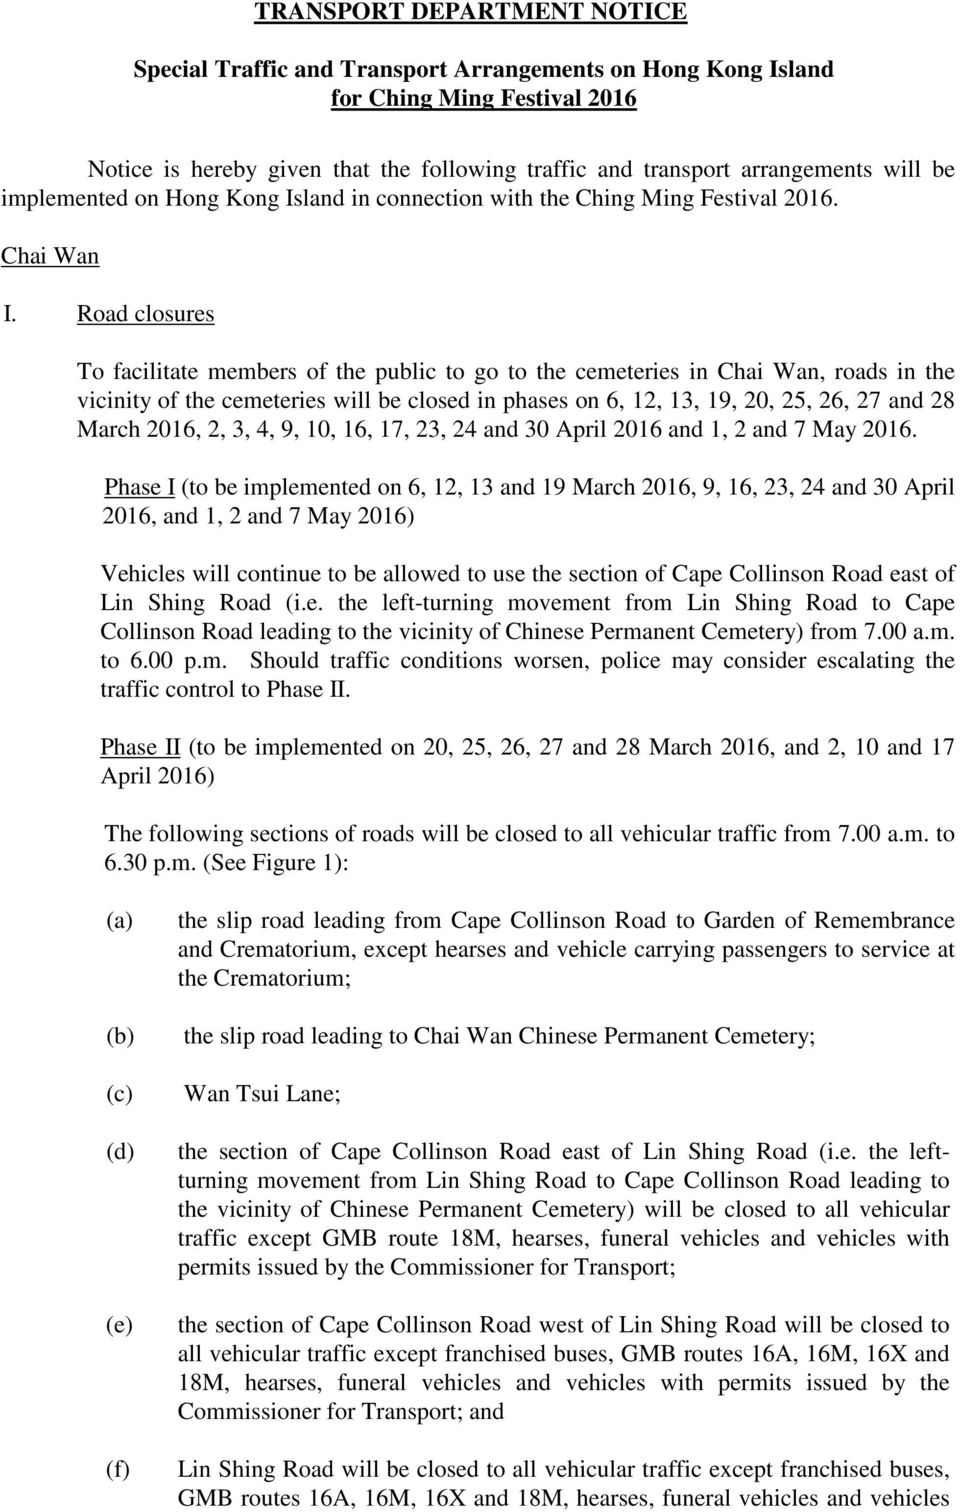 Road closures To facilitate members of the public to go to the cemeteries in Chai Wan, roads in the vicinity of the cemeteries will be closed in phases on 6, 12, 13, 19, 20, 25, 26, 27 and 28 March